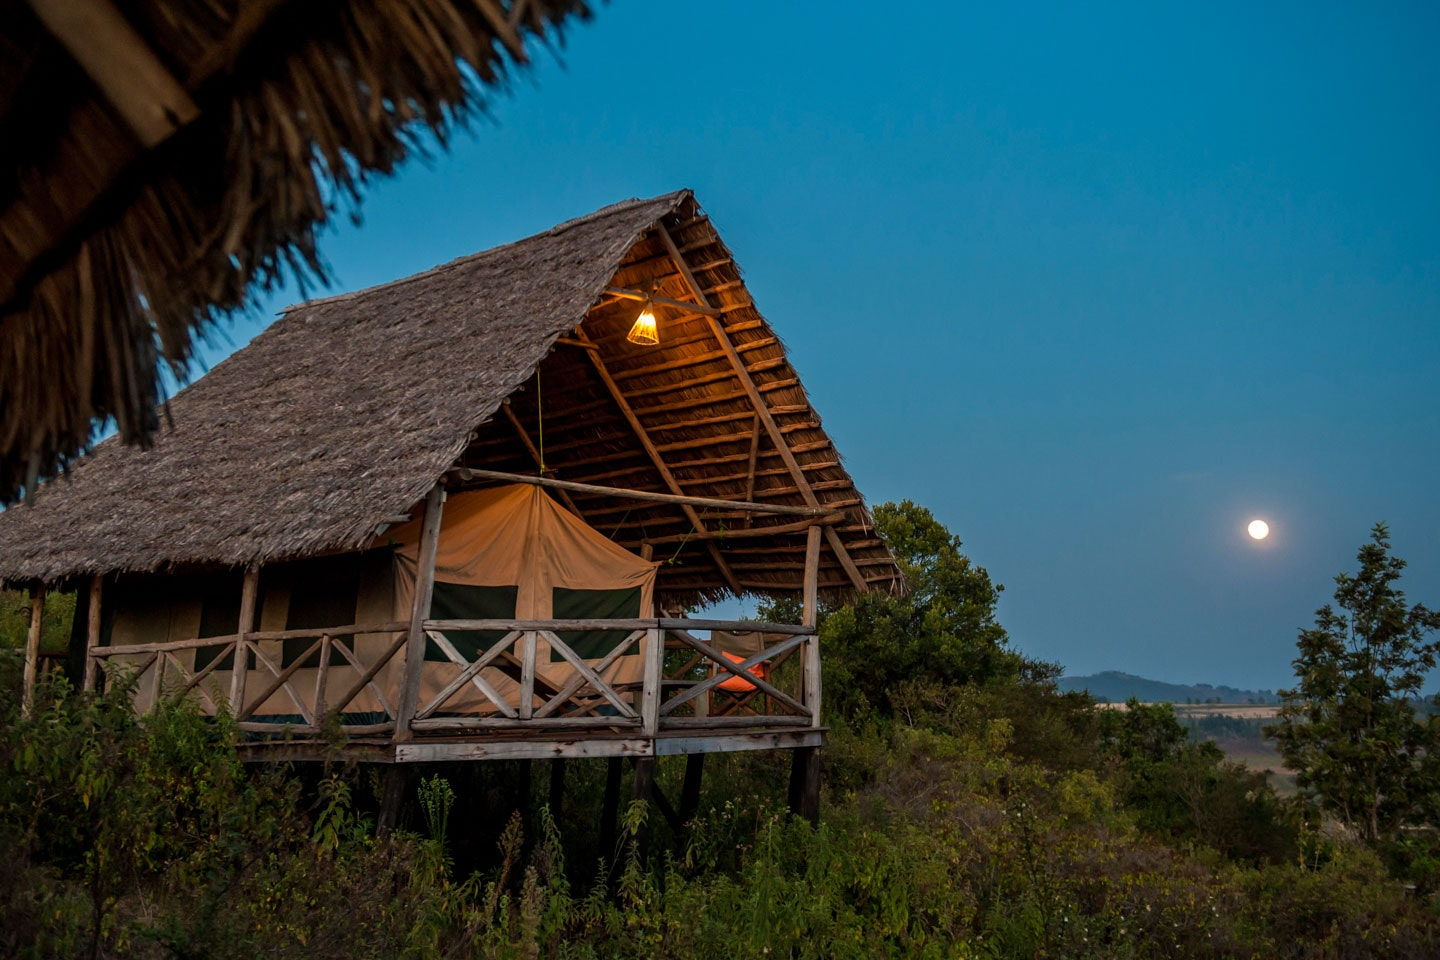 Rhotia Valley Tented Lodge & Rhotia Valley Tented Lodge Tanzania | Timbuktu Travel